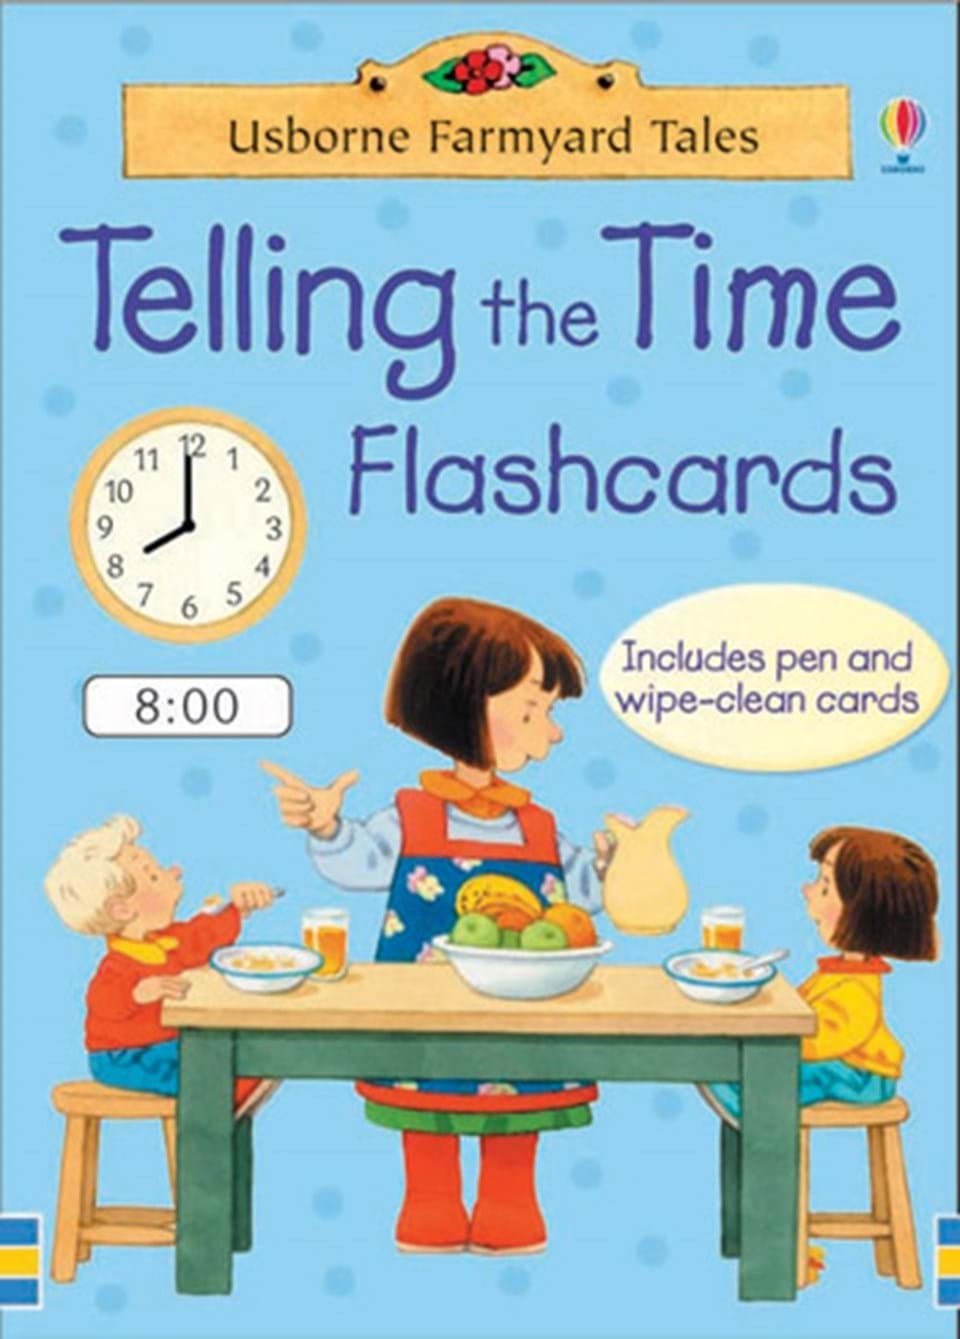 worksheet Telling Time Flashcards farmyard tales telling the time at usborne books home flashcards